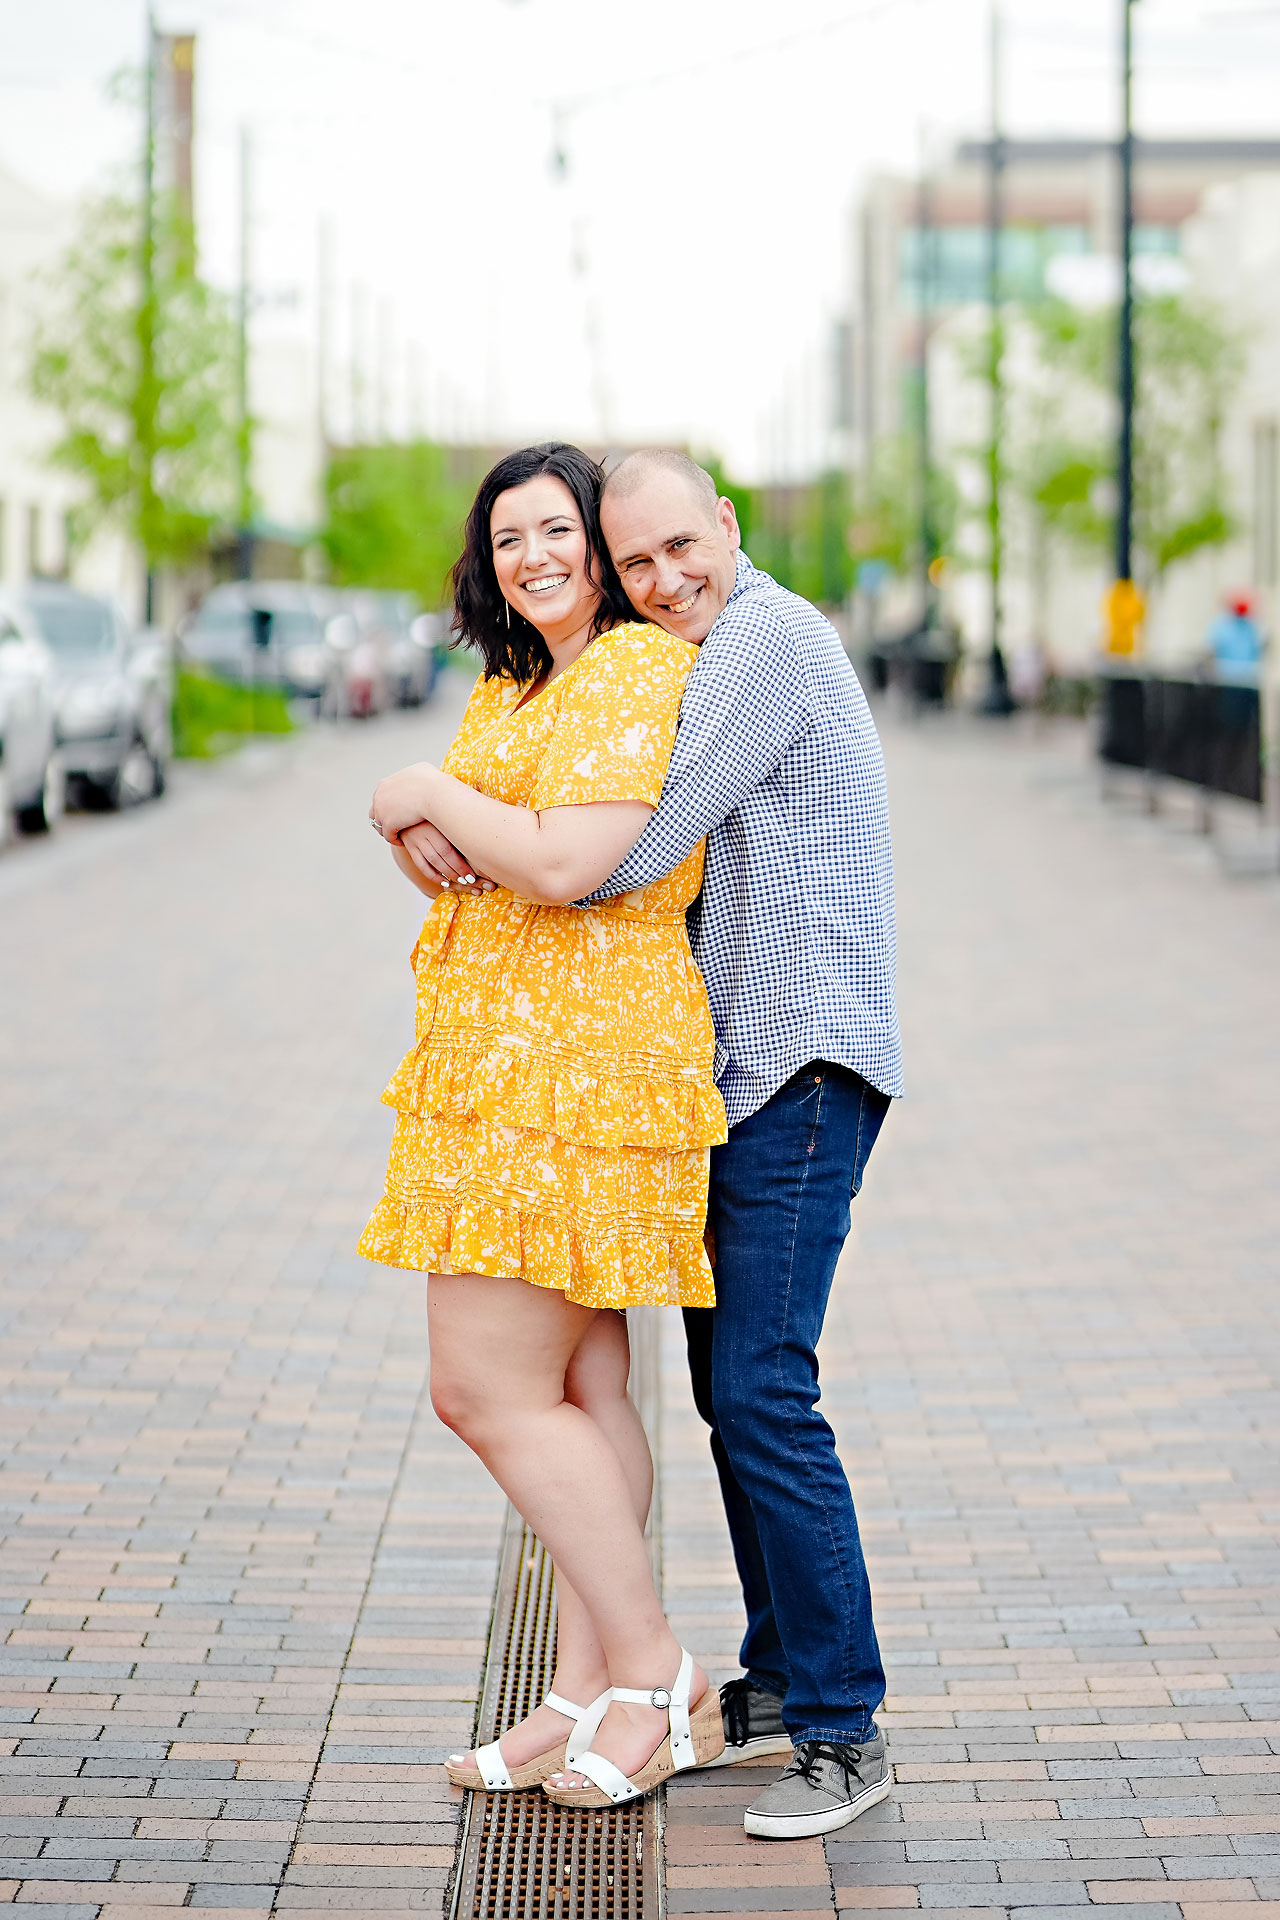 Katie Chuck Bottleworks Canal Indianapolis Engagement Session 040